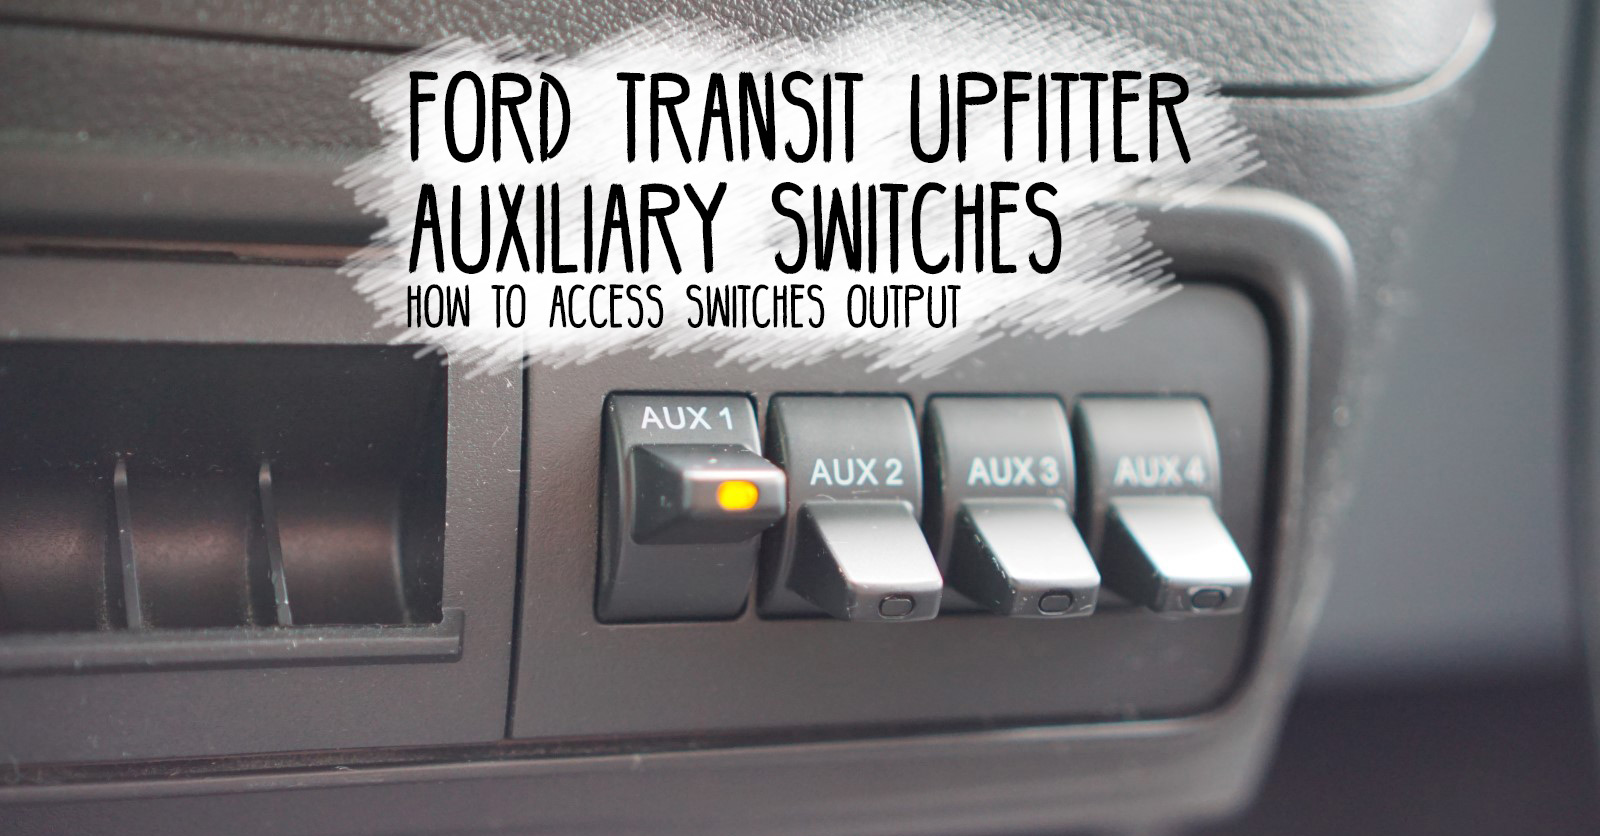 Ford Transit Upfitter Auxiliary Switches Faroutride S Max Fuse Box